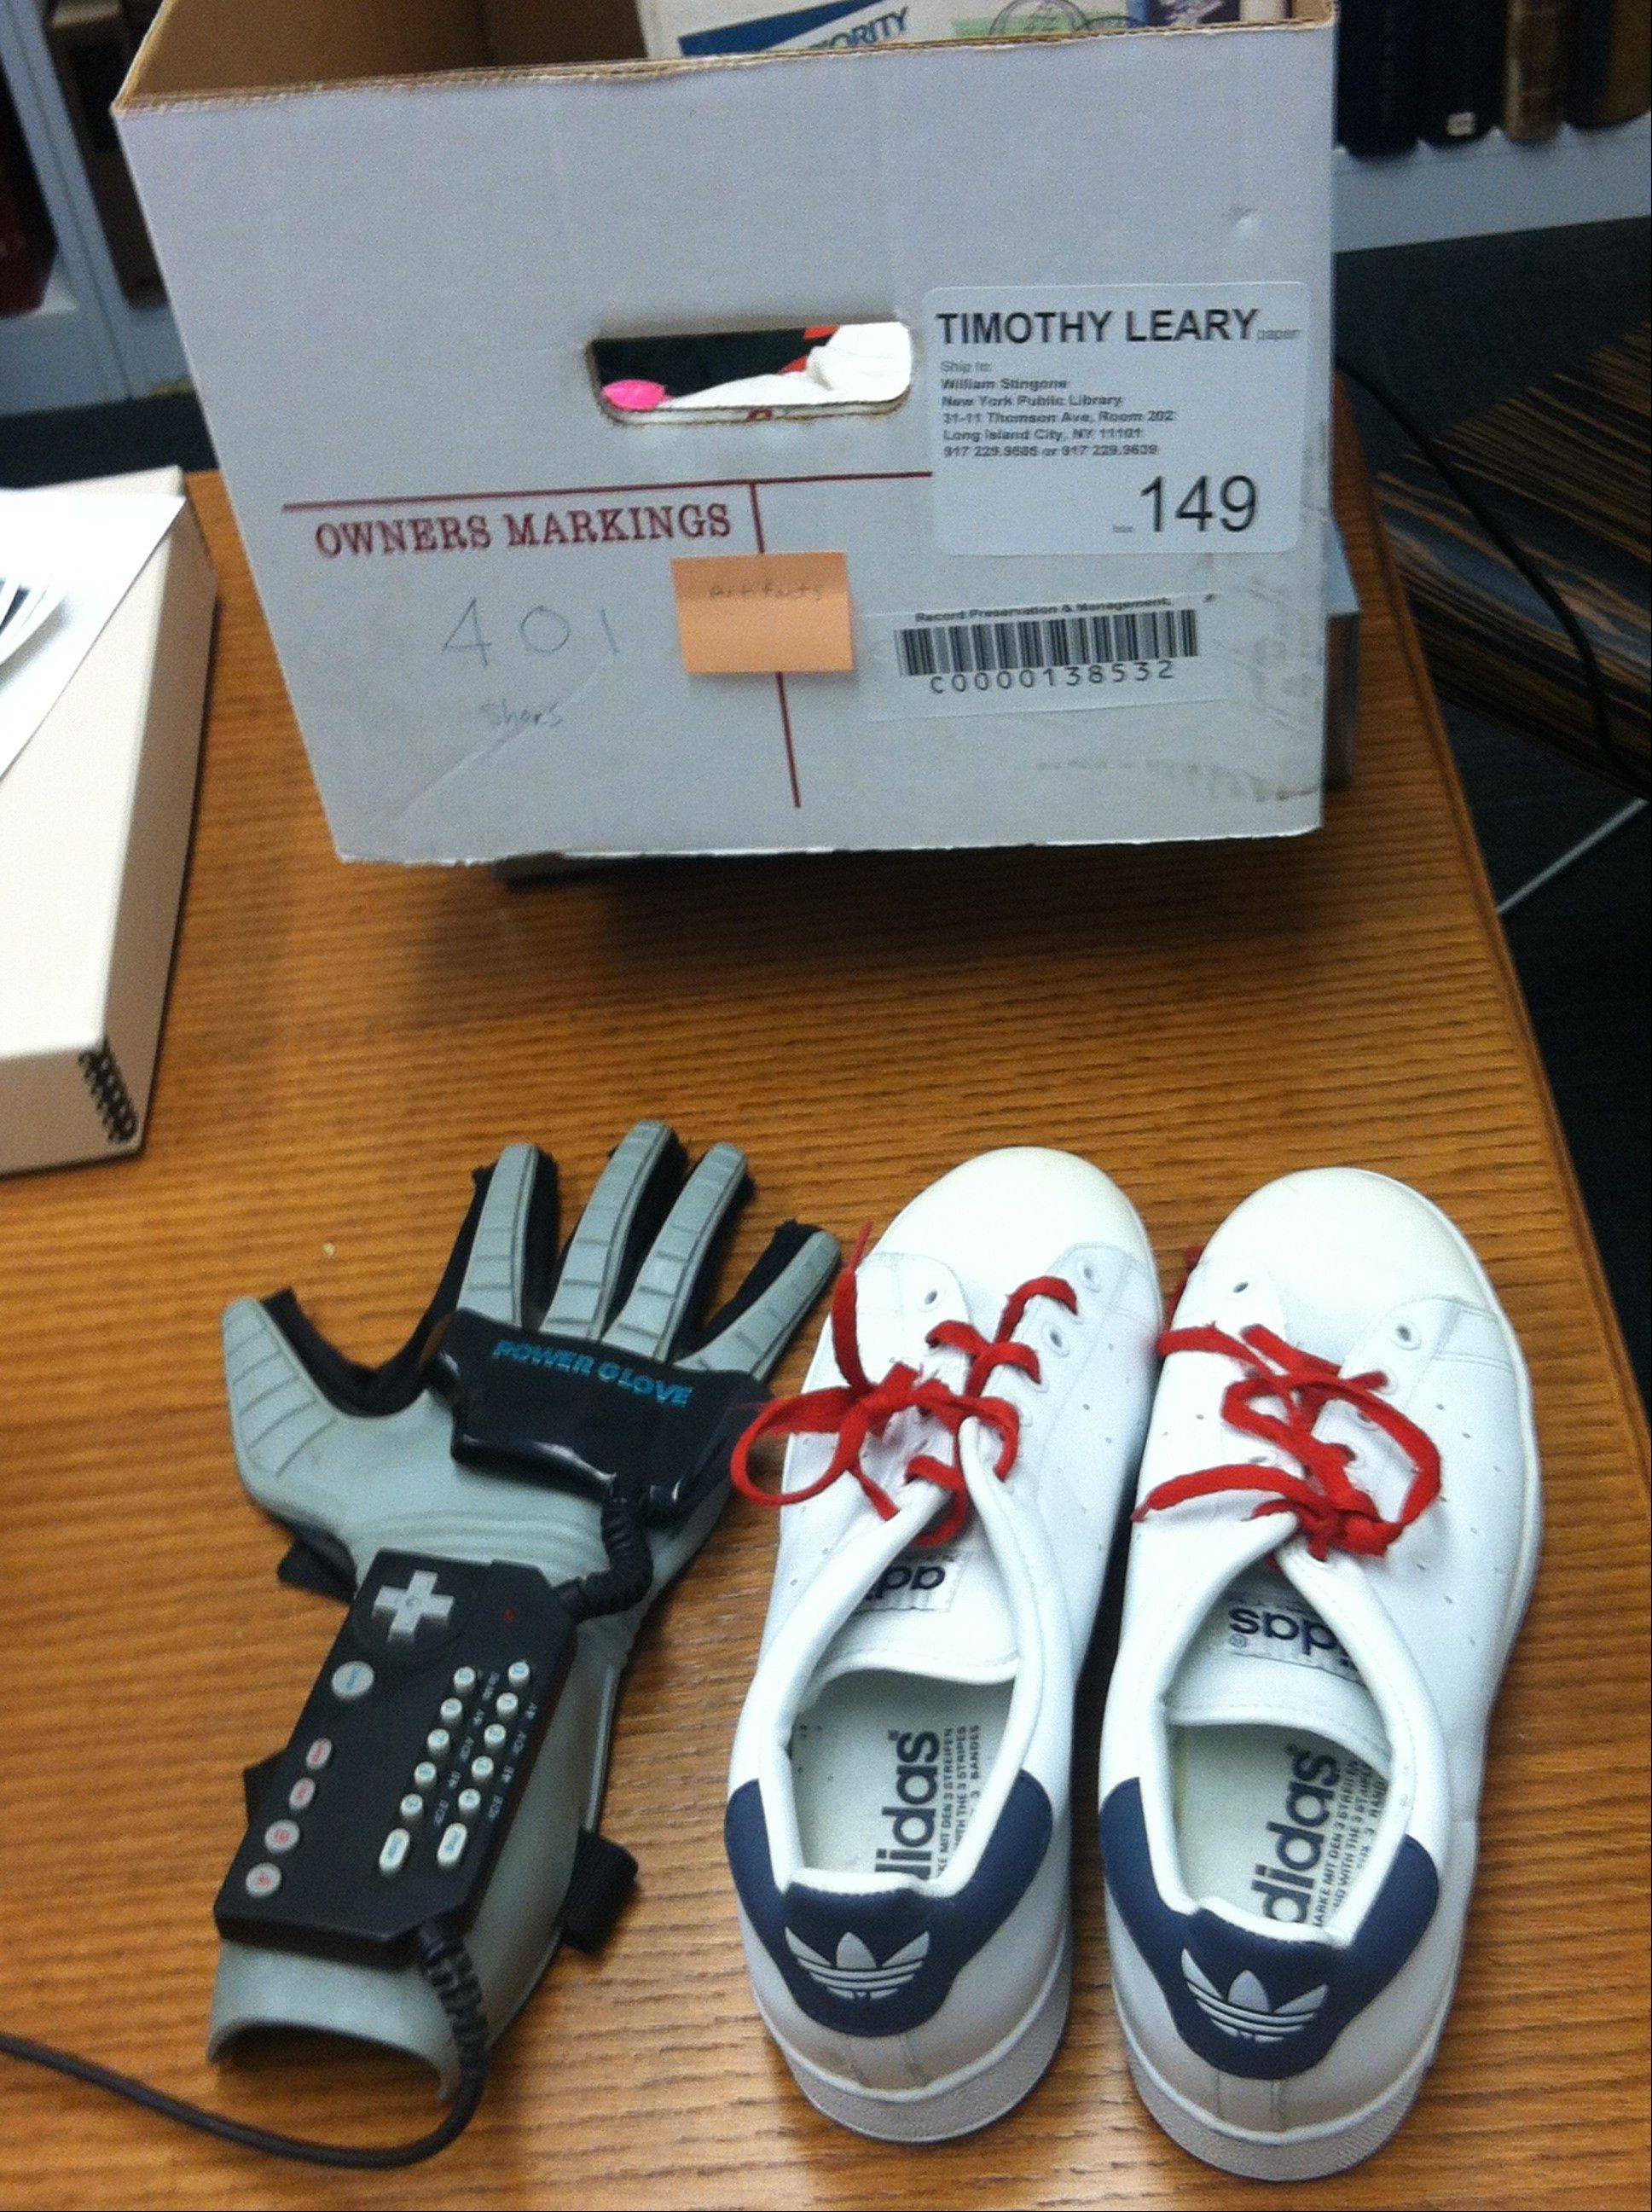 Timothy Leary's Nintendo power glove and sneakers. The items are among thousands of documents, correspondence, writings and personal belongings relating to Leary's scientific research into psychedelic drugs in the 1960s, now available to scholars and the public at the New York Public Library, which purchased the collection in 2011 from the Leary estate.